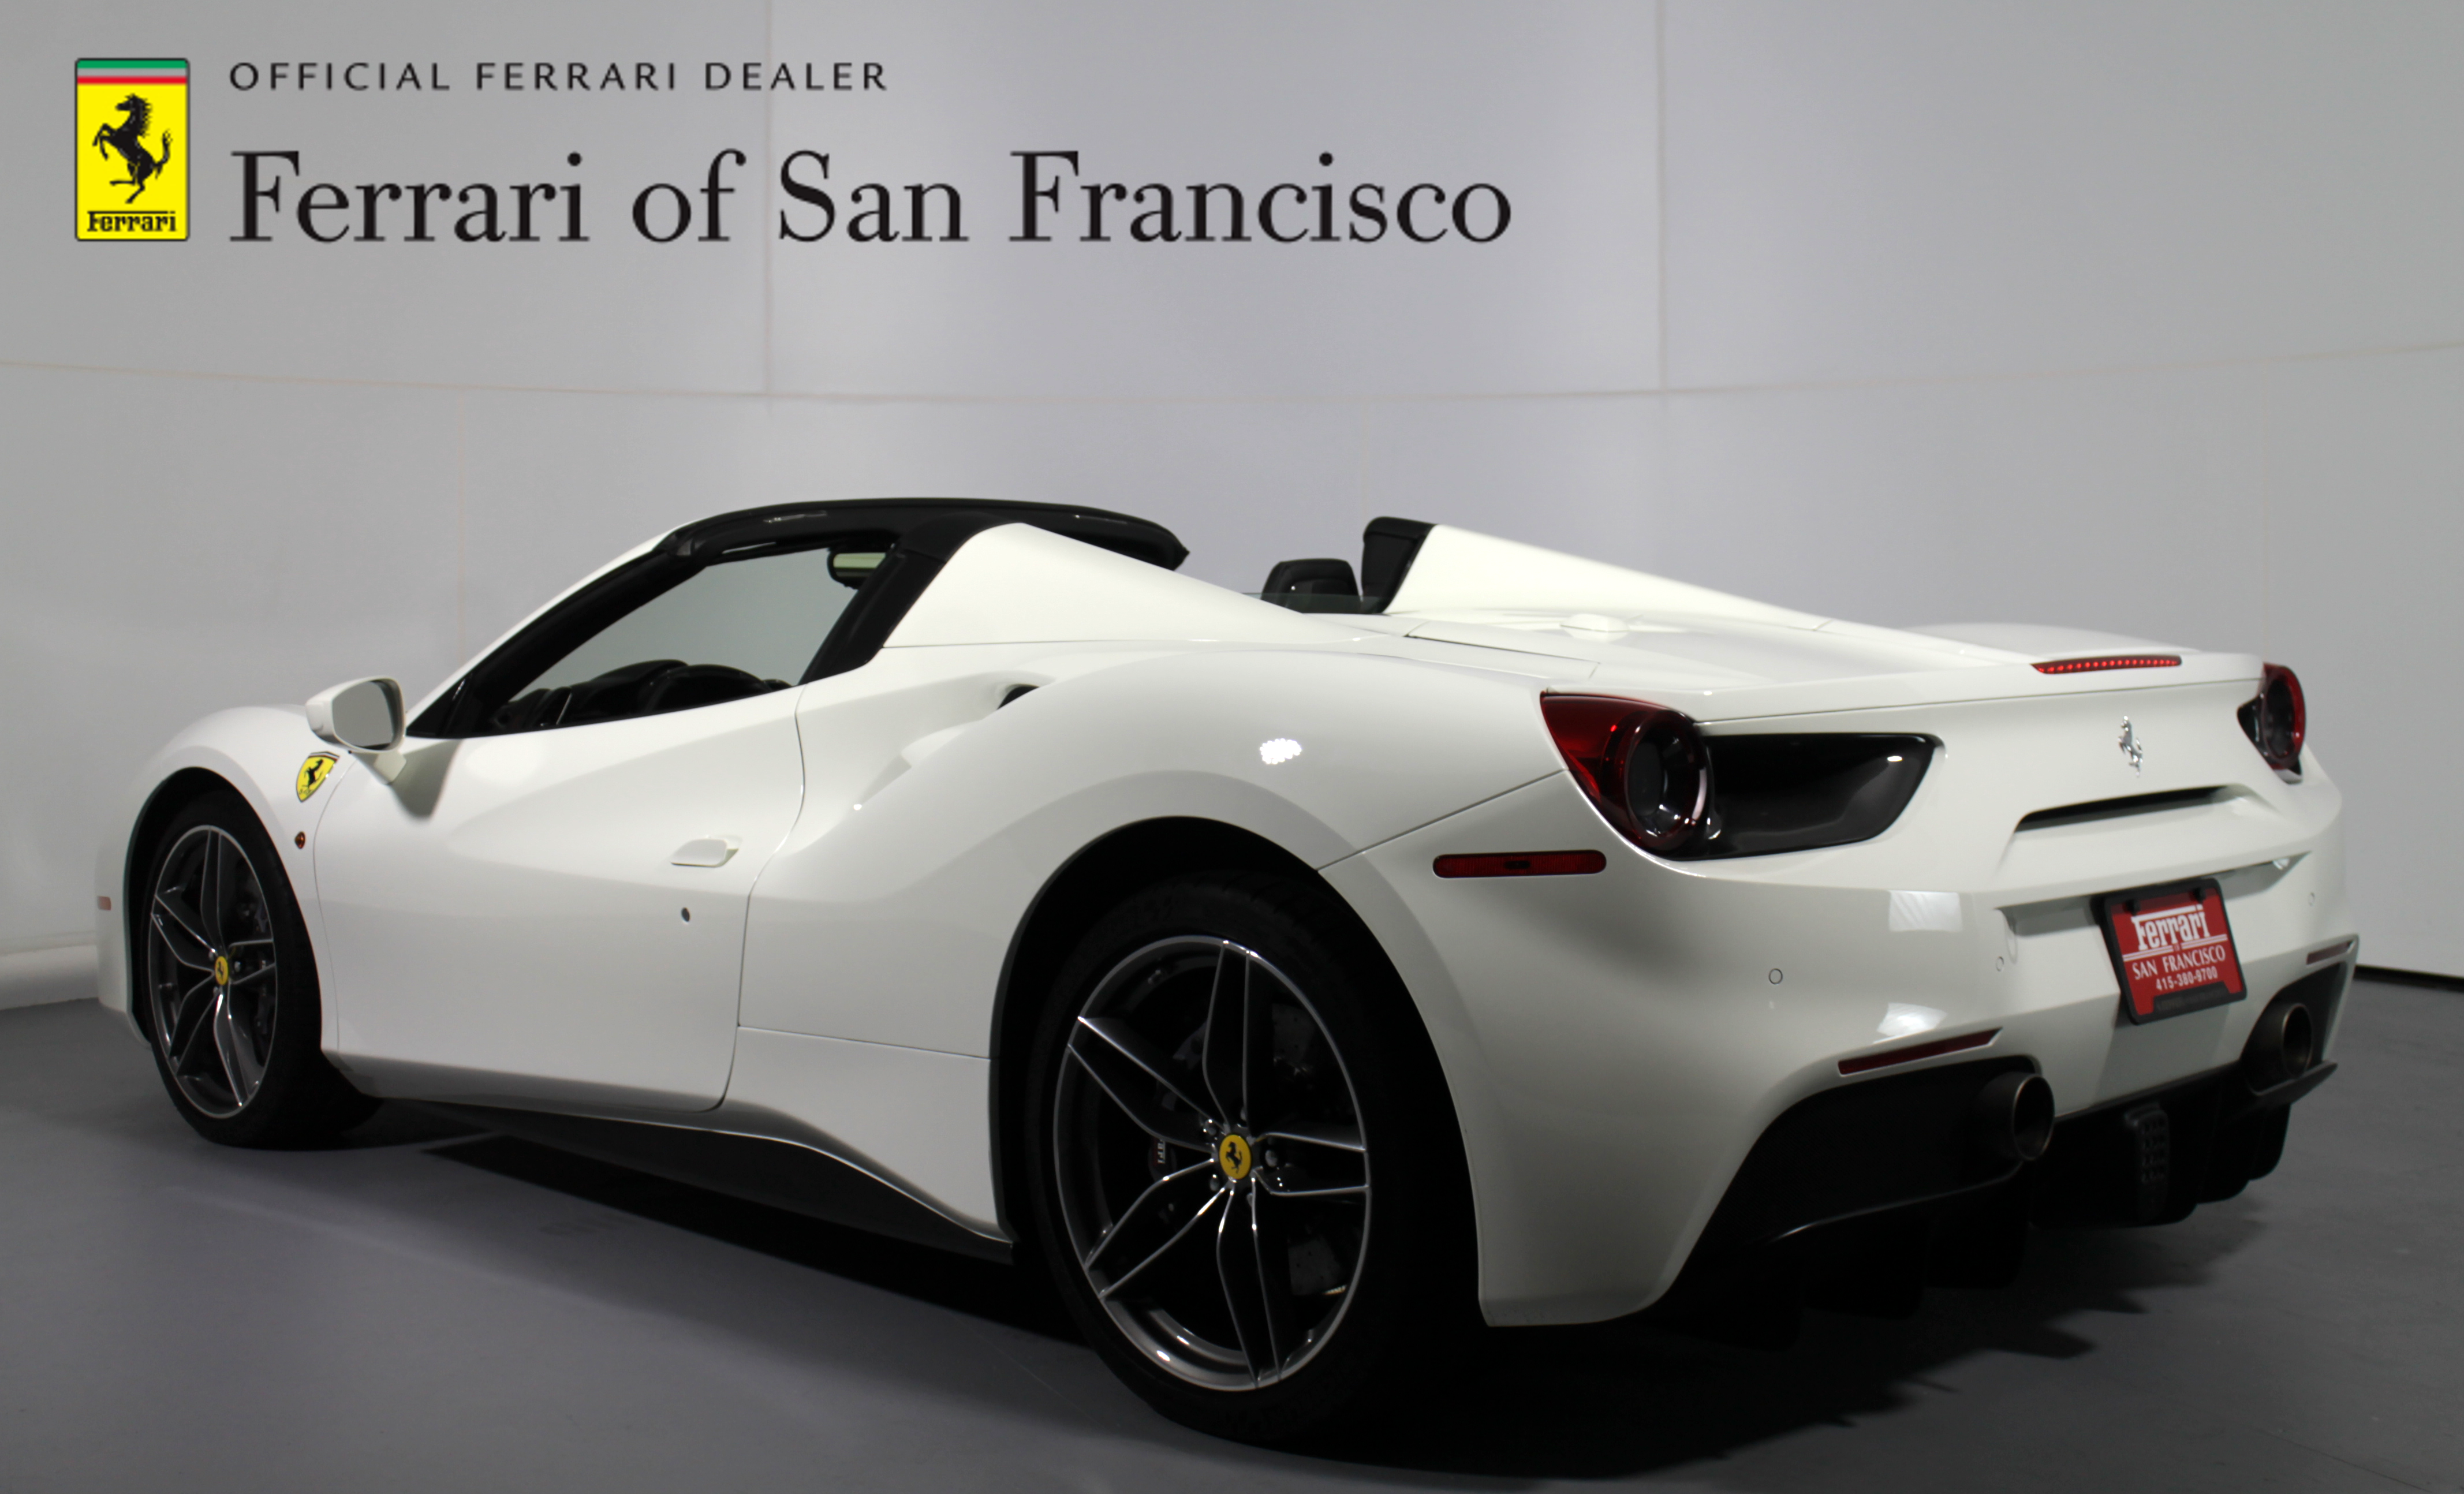 2016 ferrari 488 spider. Cars Review. Best American Auto & Cars Review